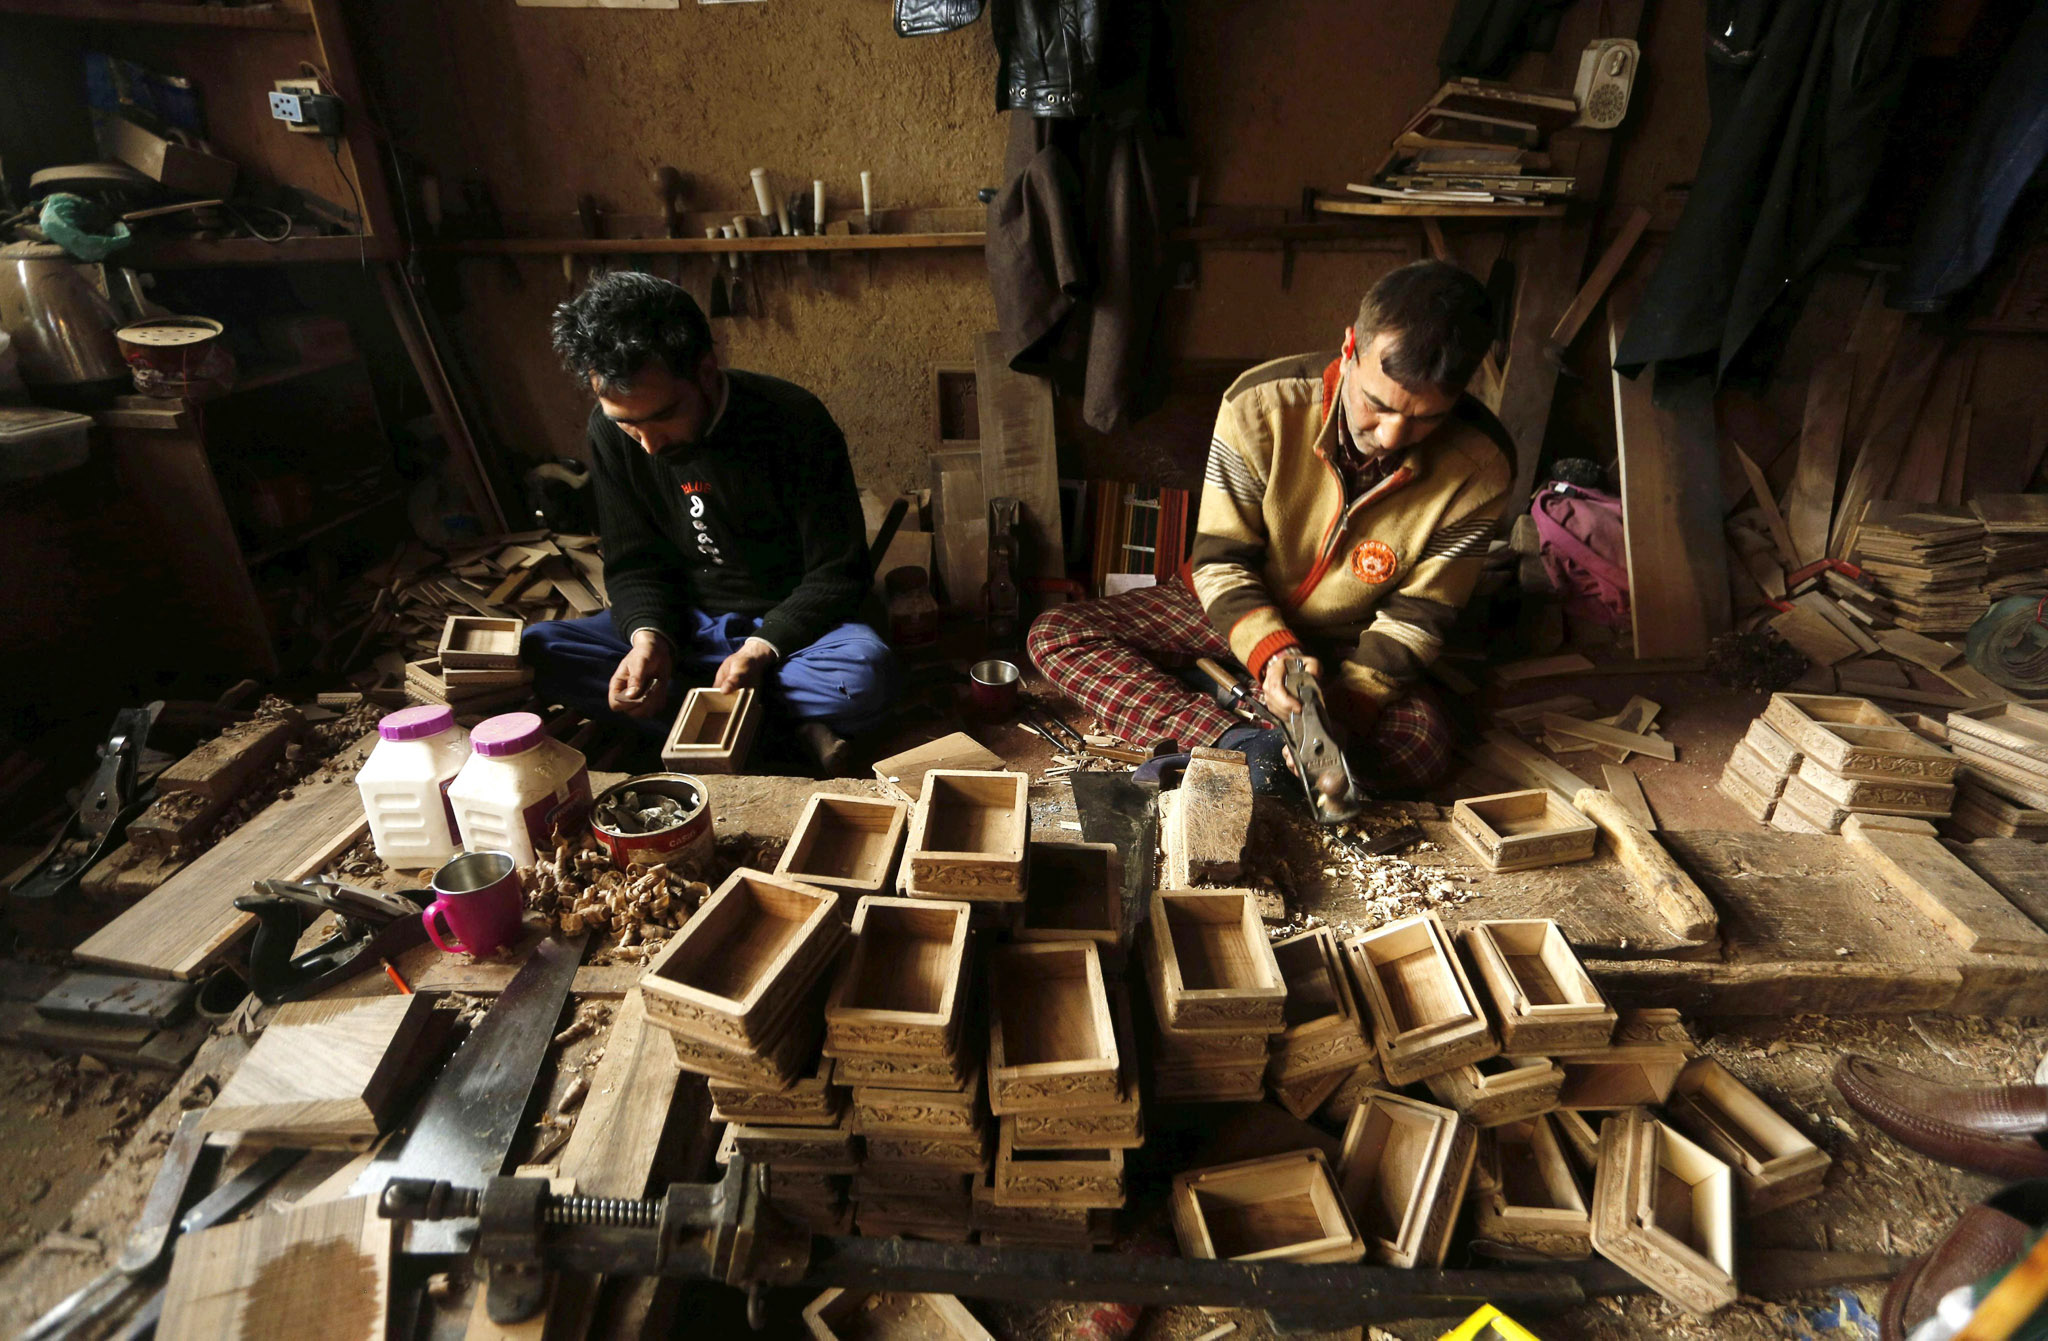 Wood business in Kashmir...epa05141371 Kashmiri woodwork craftsmen work at their workshop in Srinagar, summer capital of Indian Kashmir, 03 February 2016. People associated with walnut woodwork complain of economic hardships  because of low wages, which has resulted in decline in their business.  EPA/FAROOQ KHAN